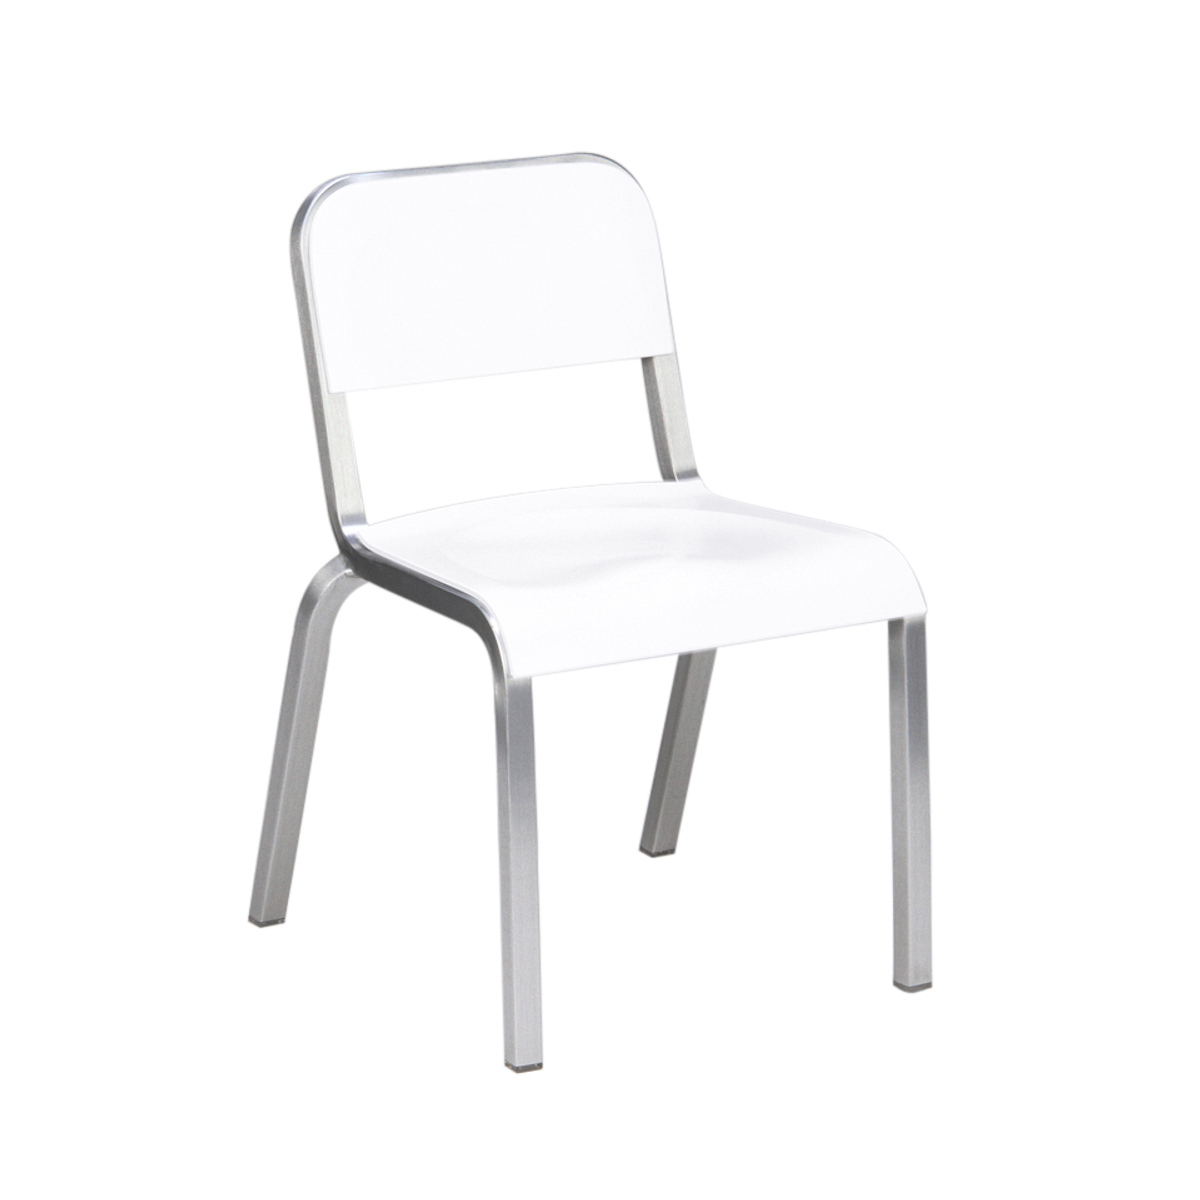 1951™ STACKING CHAIR